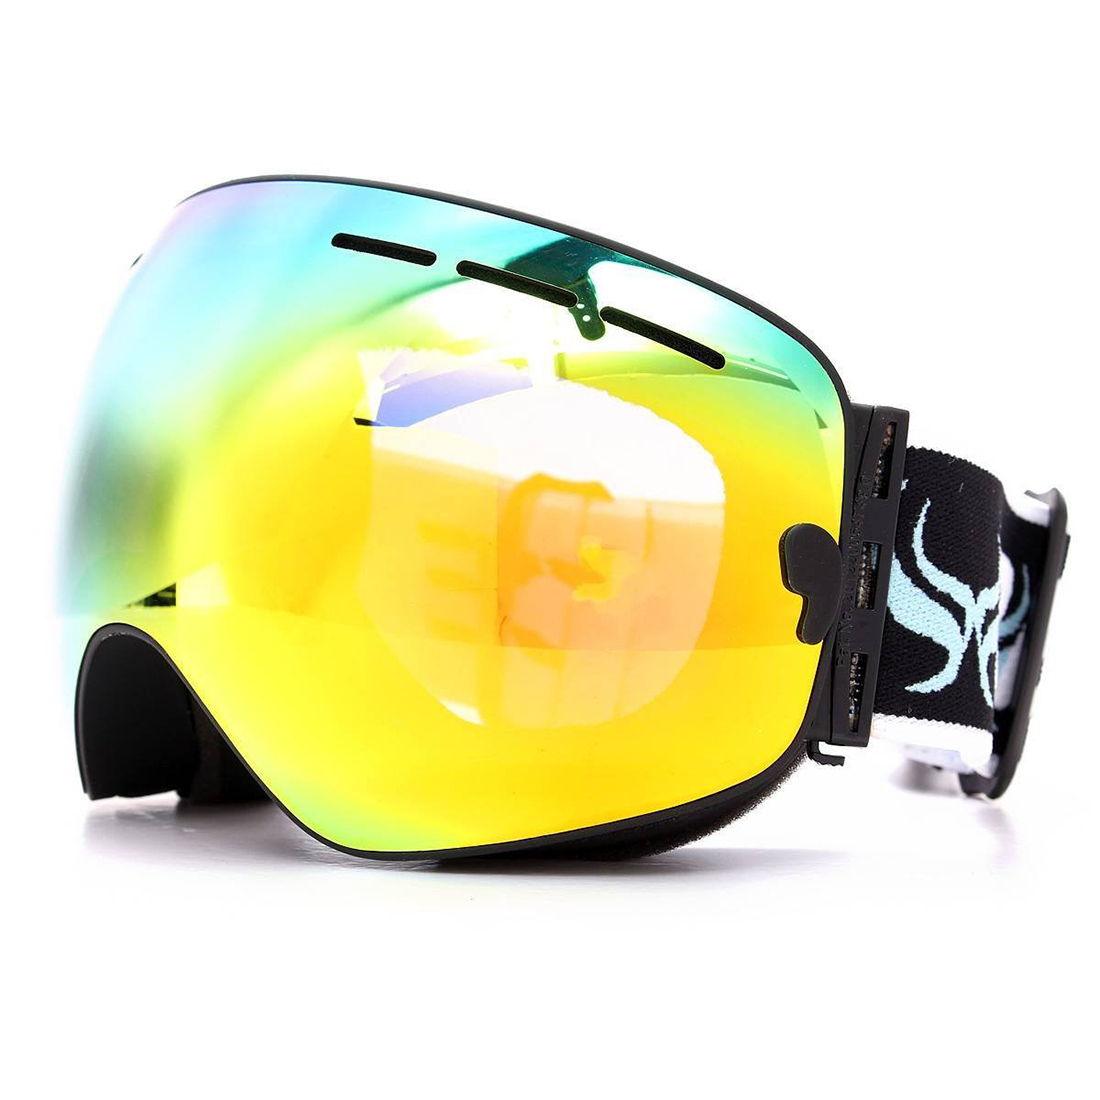 BENICE ski goggles double layer anti-fog eyes black frame